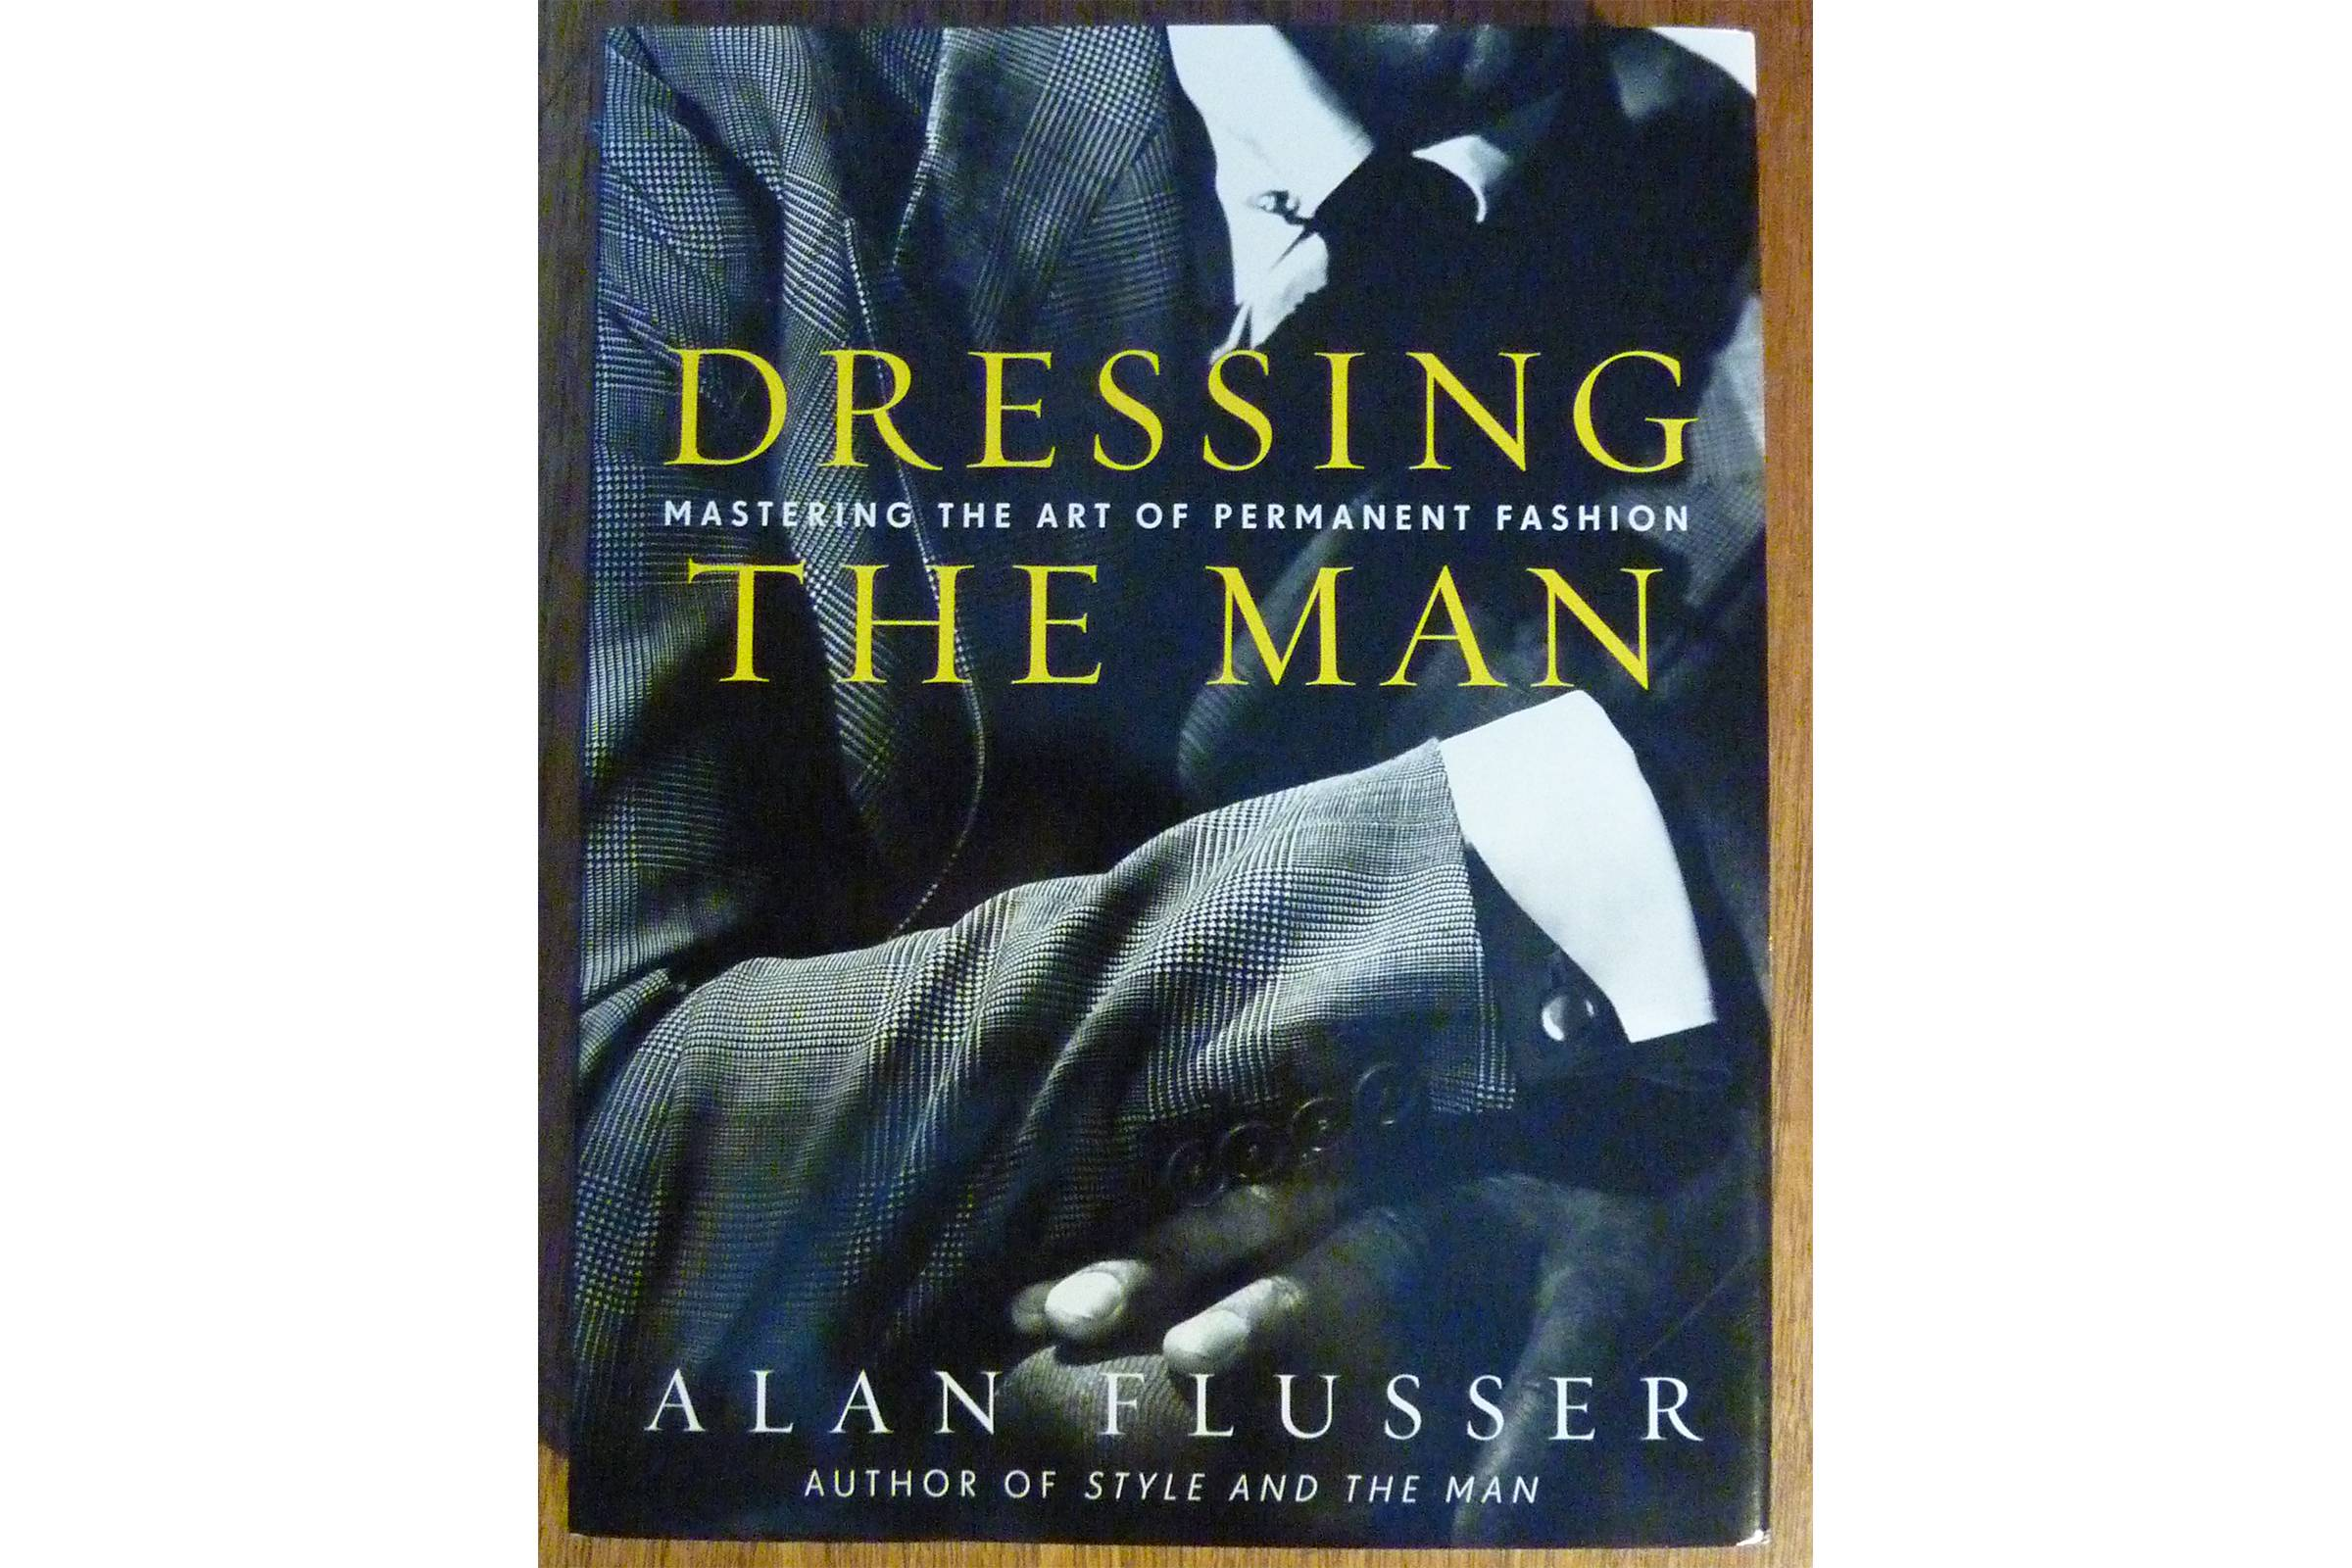 Dressing the Man: Mastering the Art of Permanent Fashion by Alan Flusser